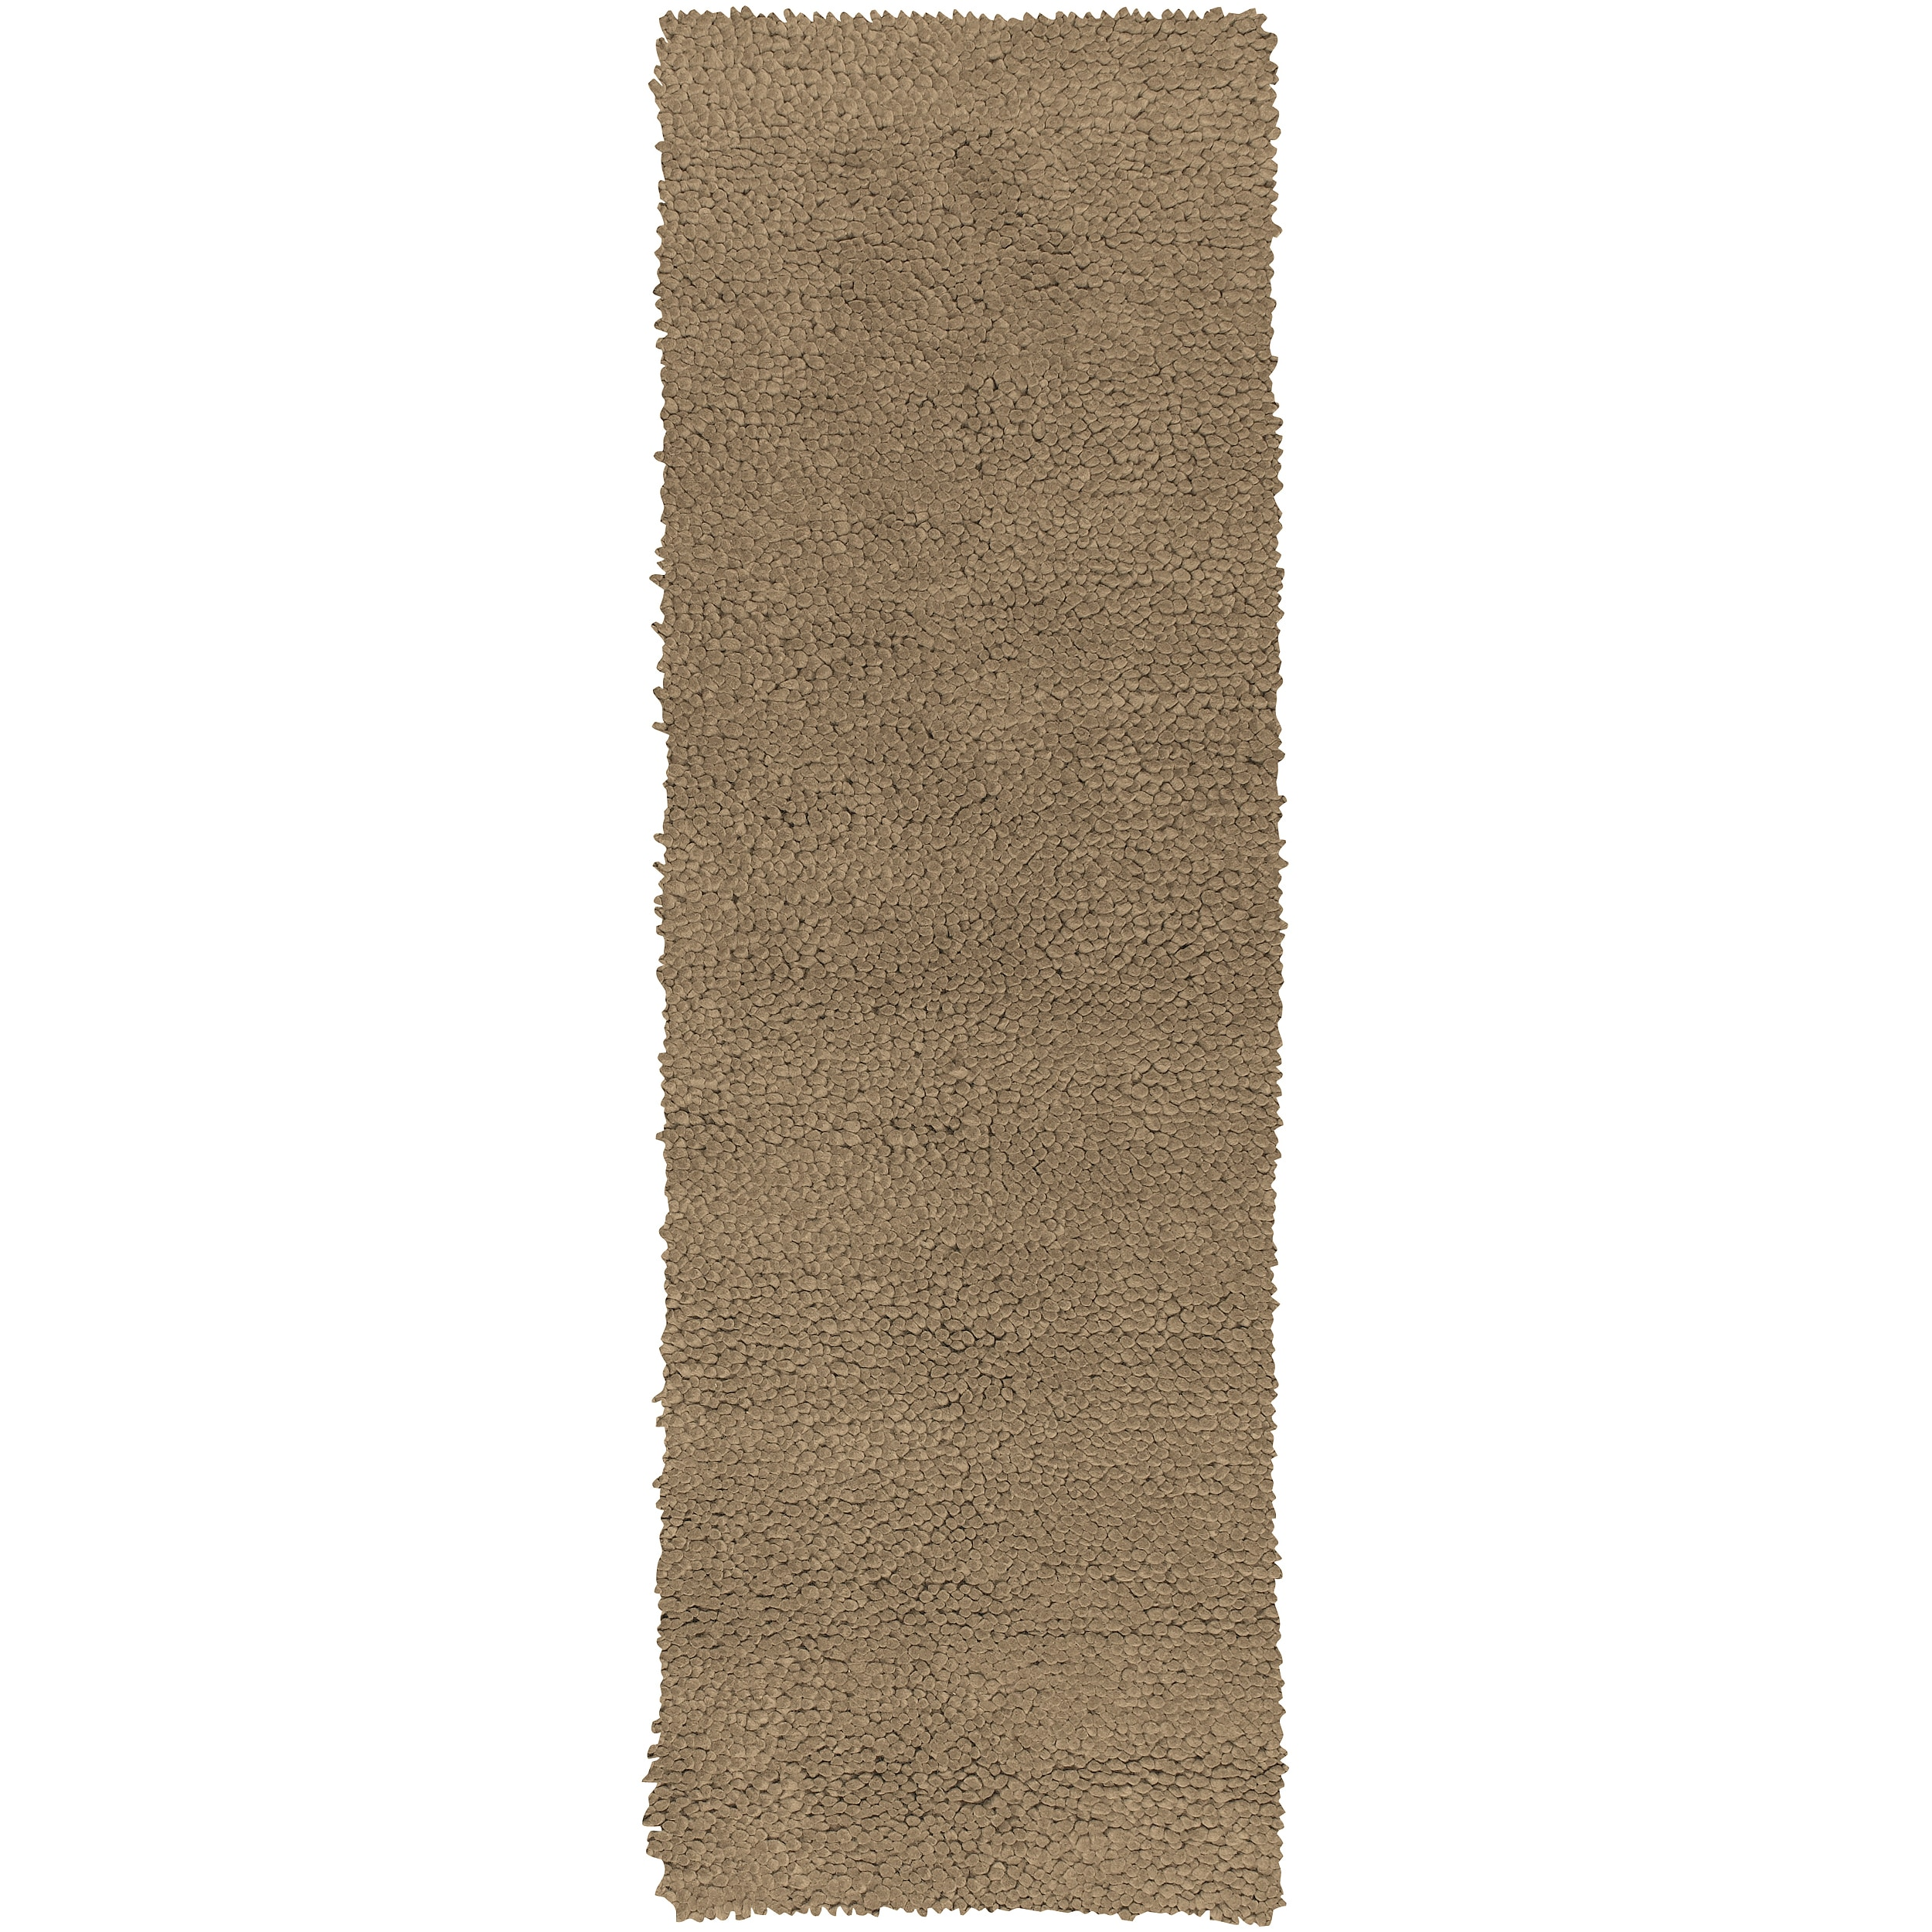 Hand-woven Ault Tan Wool Rug (4' x 10')